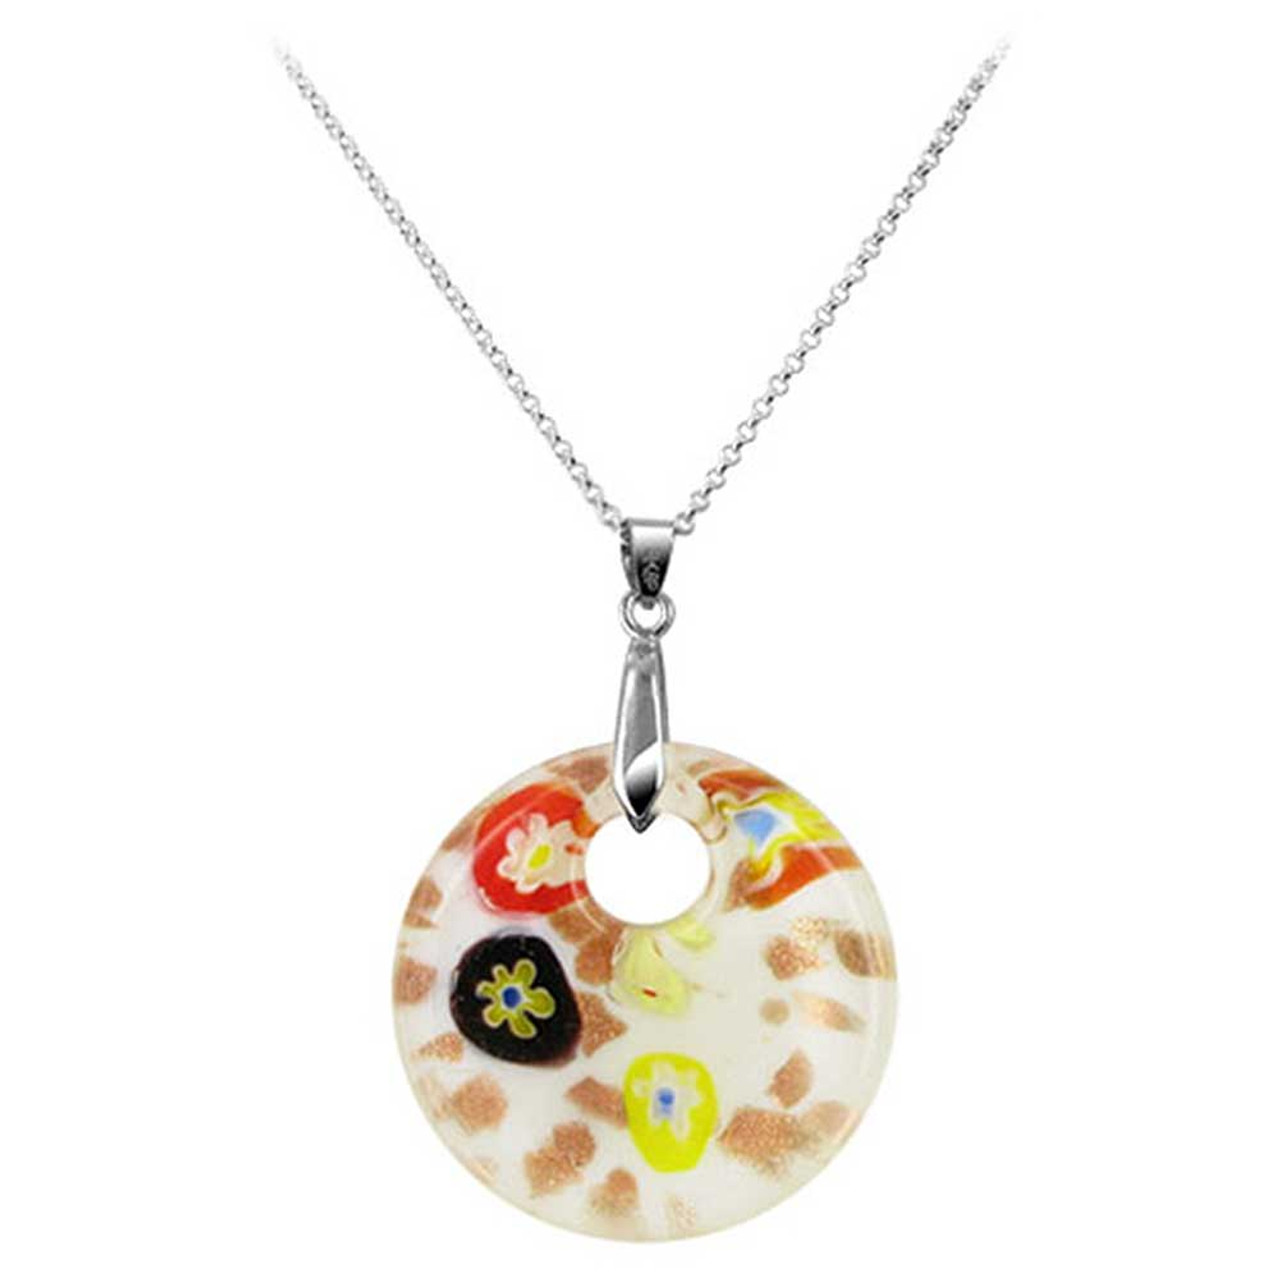 Stainless Steel Bail with White Color Glass Pendant